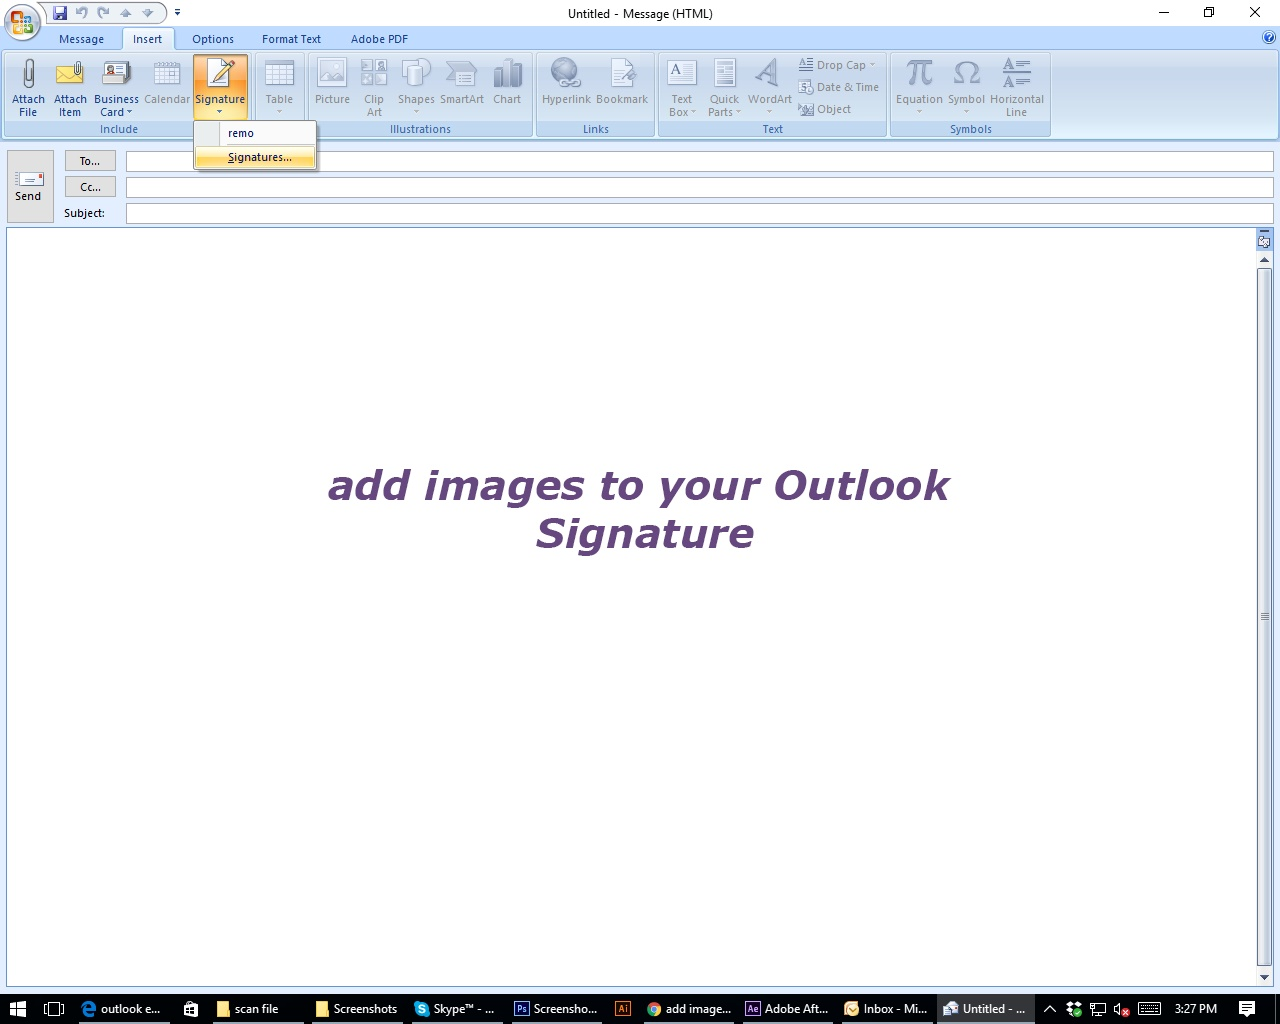 Insert an Animation or Graphic to Your Outlook Signature